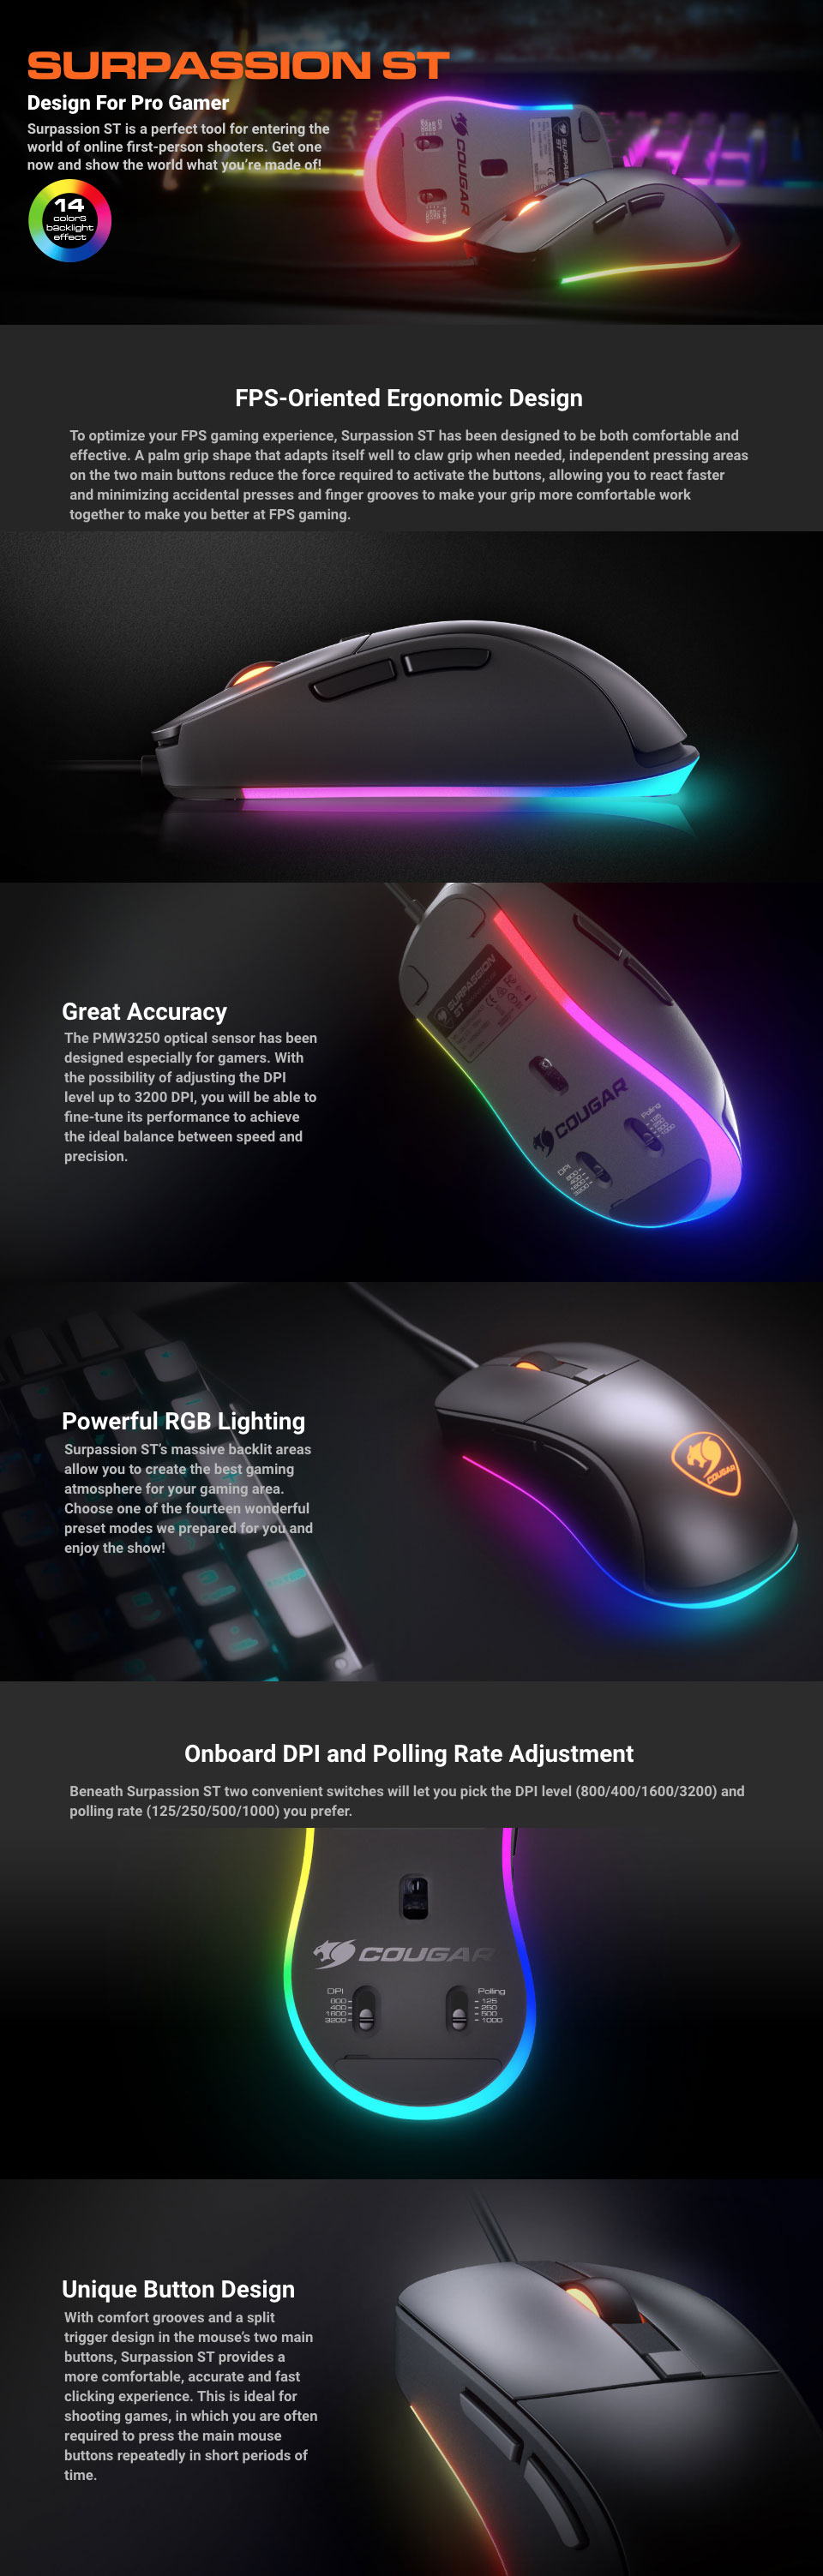 Cougar Surpassion ST RGB Gaming Mouse